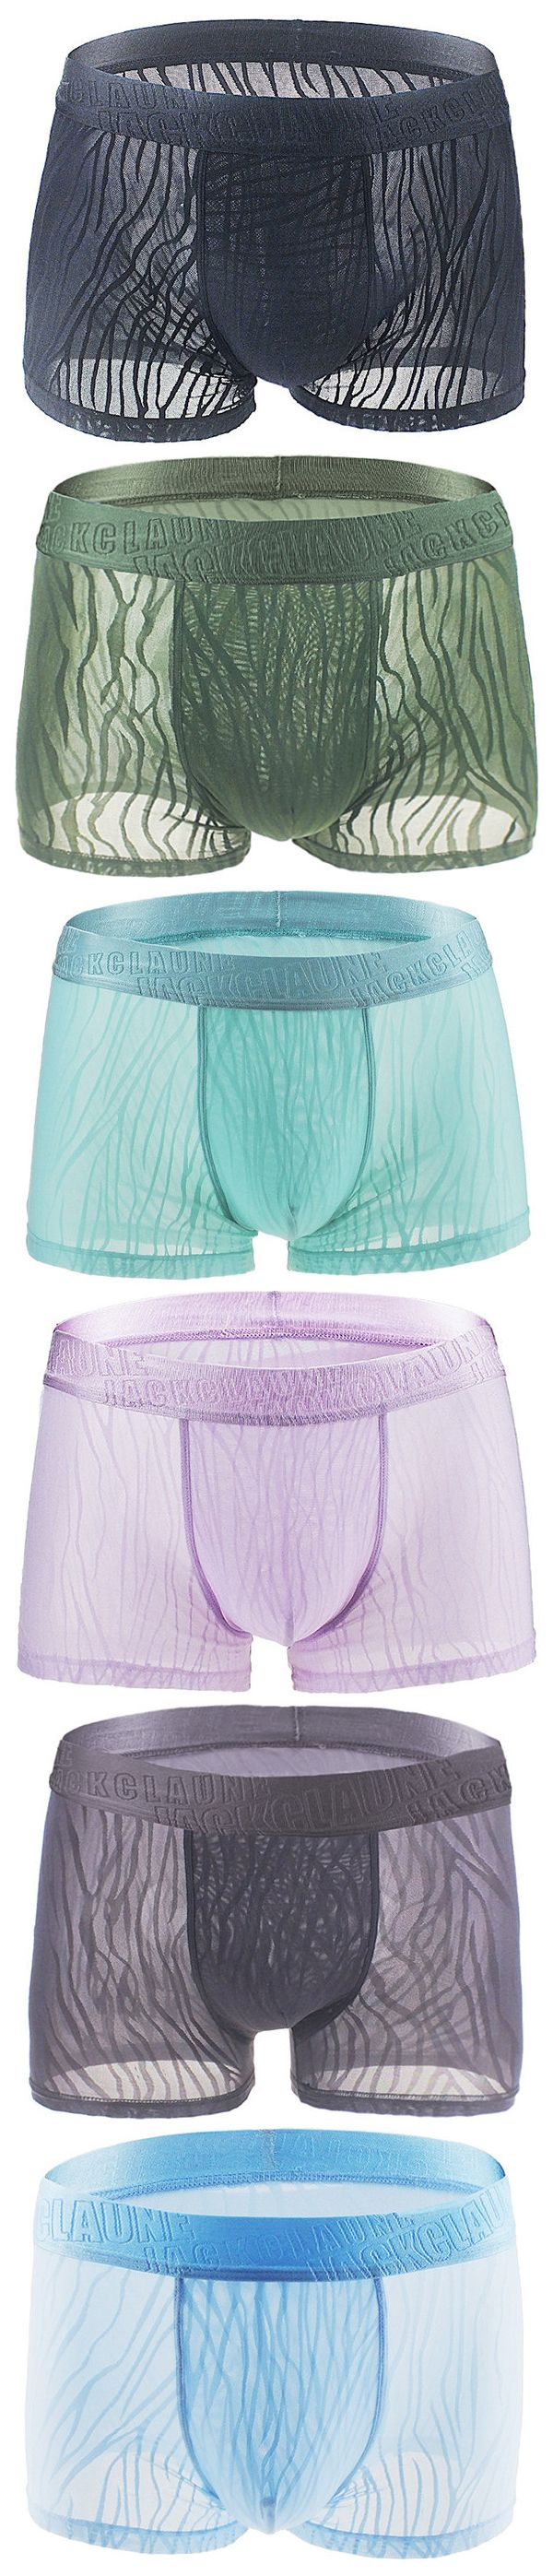 Sexy Thin Ice Silk Breathable Hollow Lace Transparent Boxer Briefs for Men